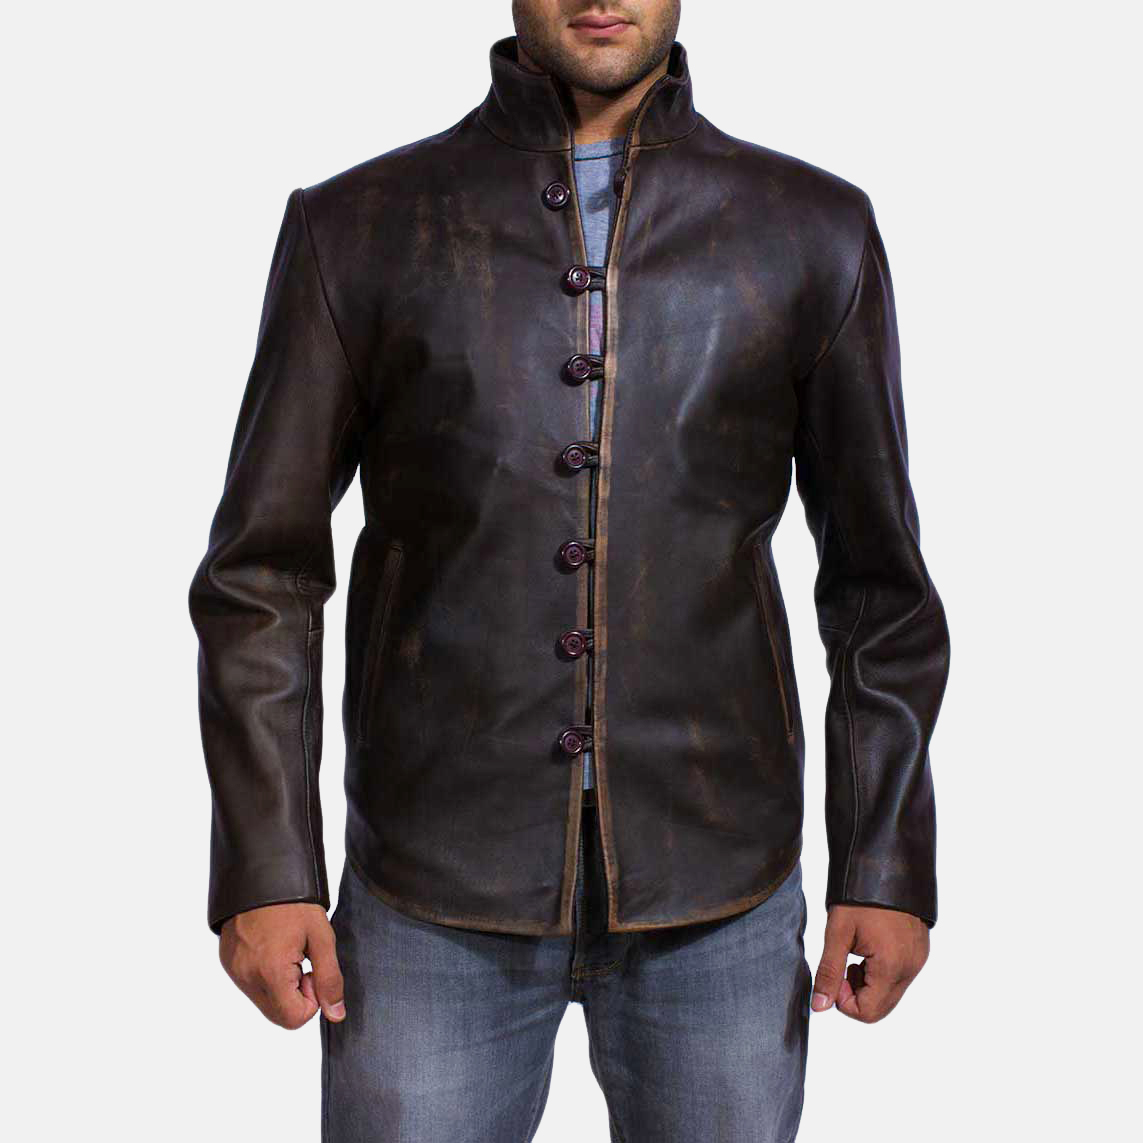 Drakeshire Brown Leather Jacket for Men